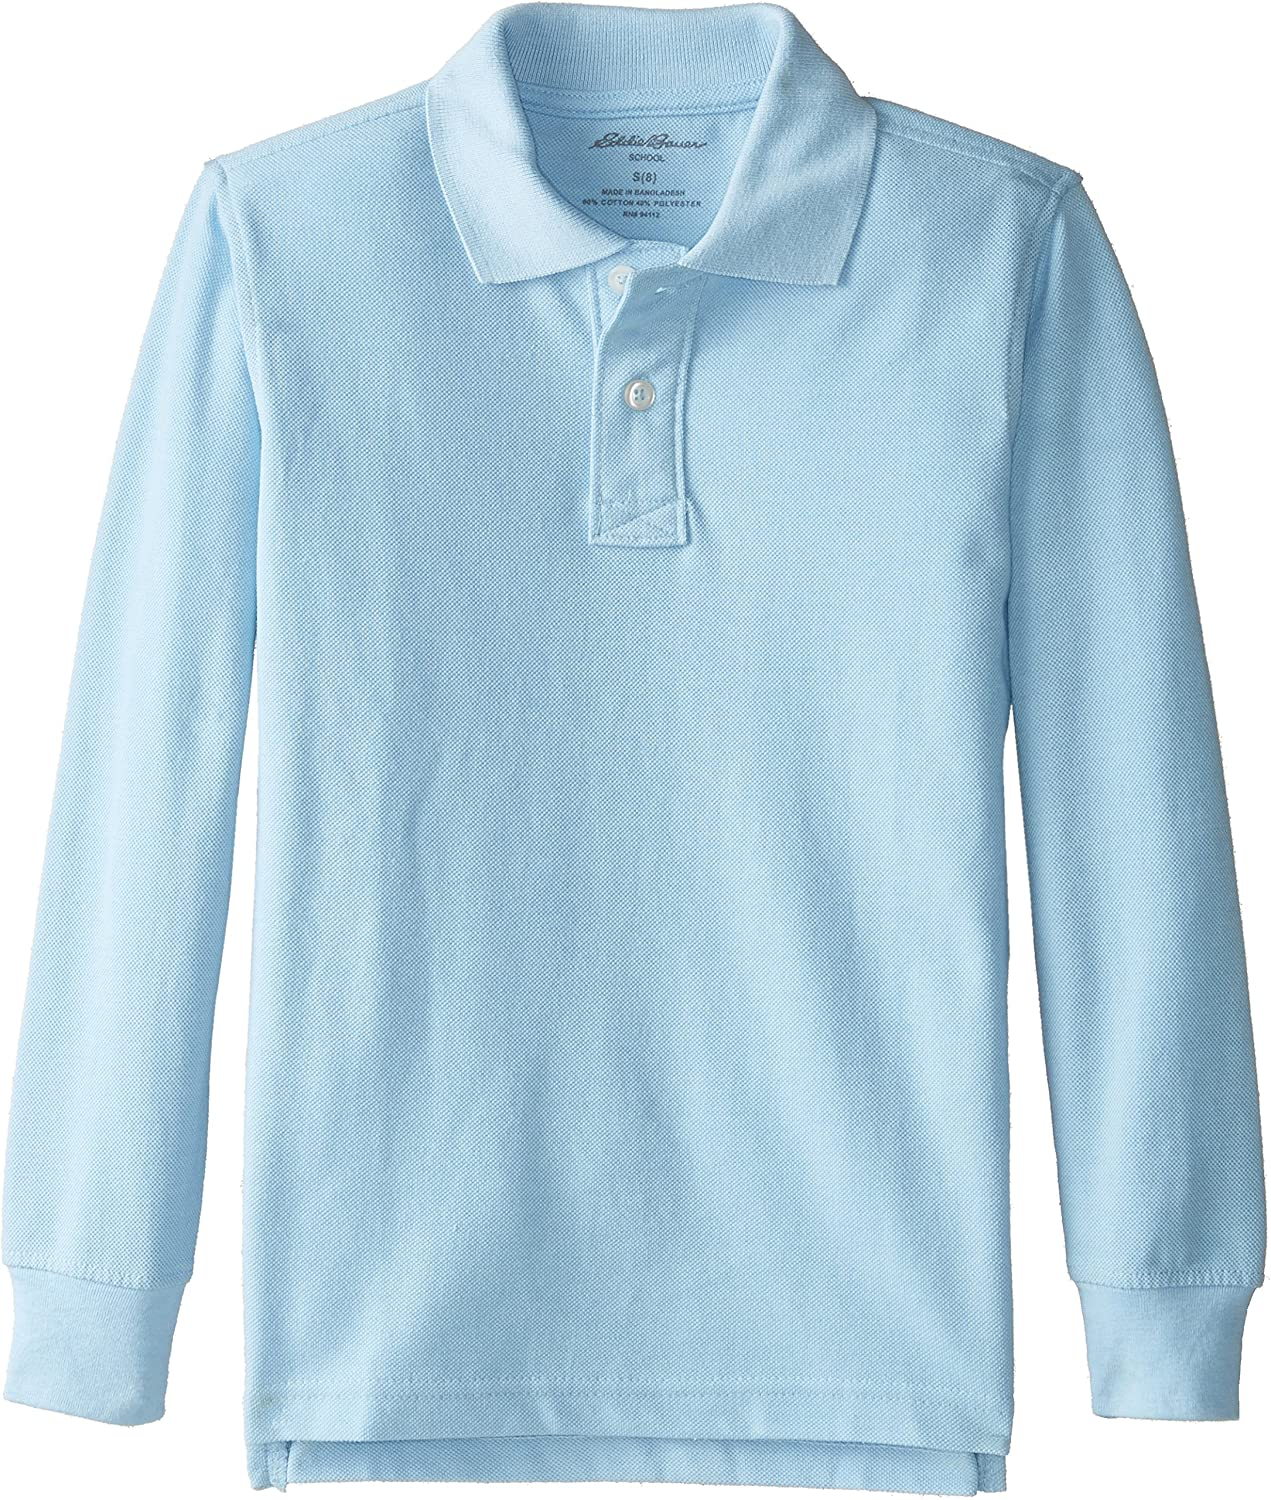 Eddie Bauer Boys' Long-Sleeve Pique Polo Shirt Eddie Bauer Uniforms Boys 2-7 IB51